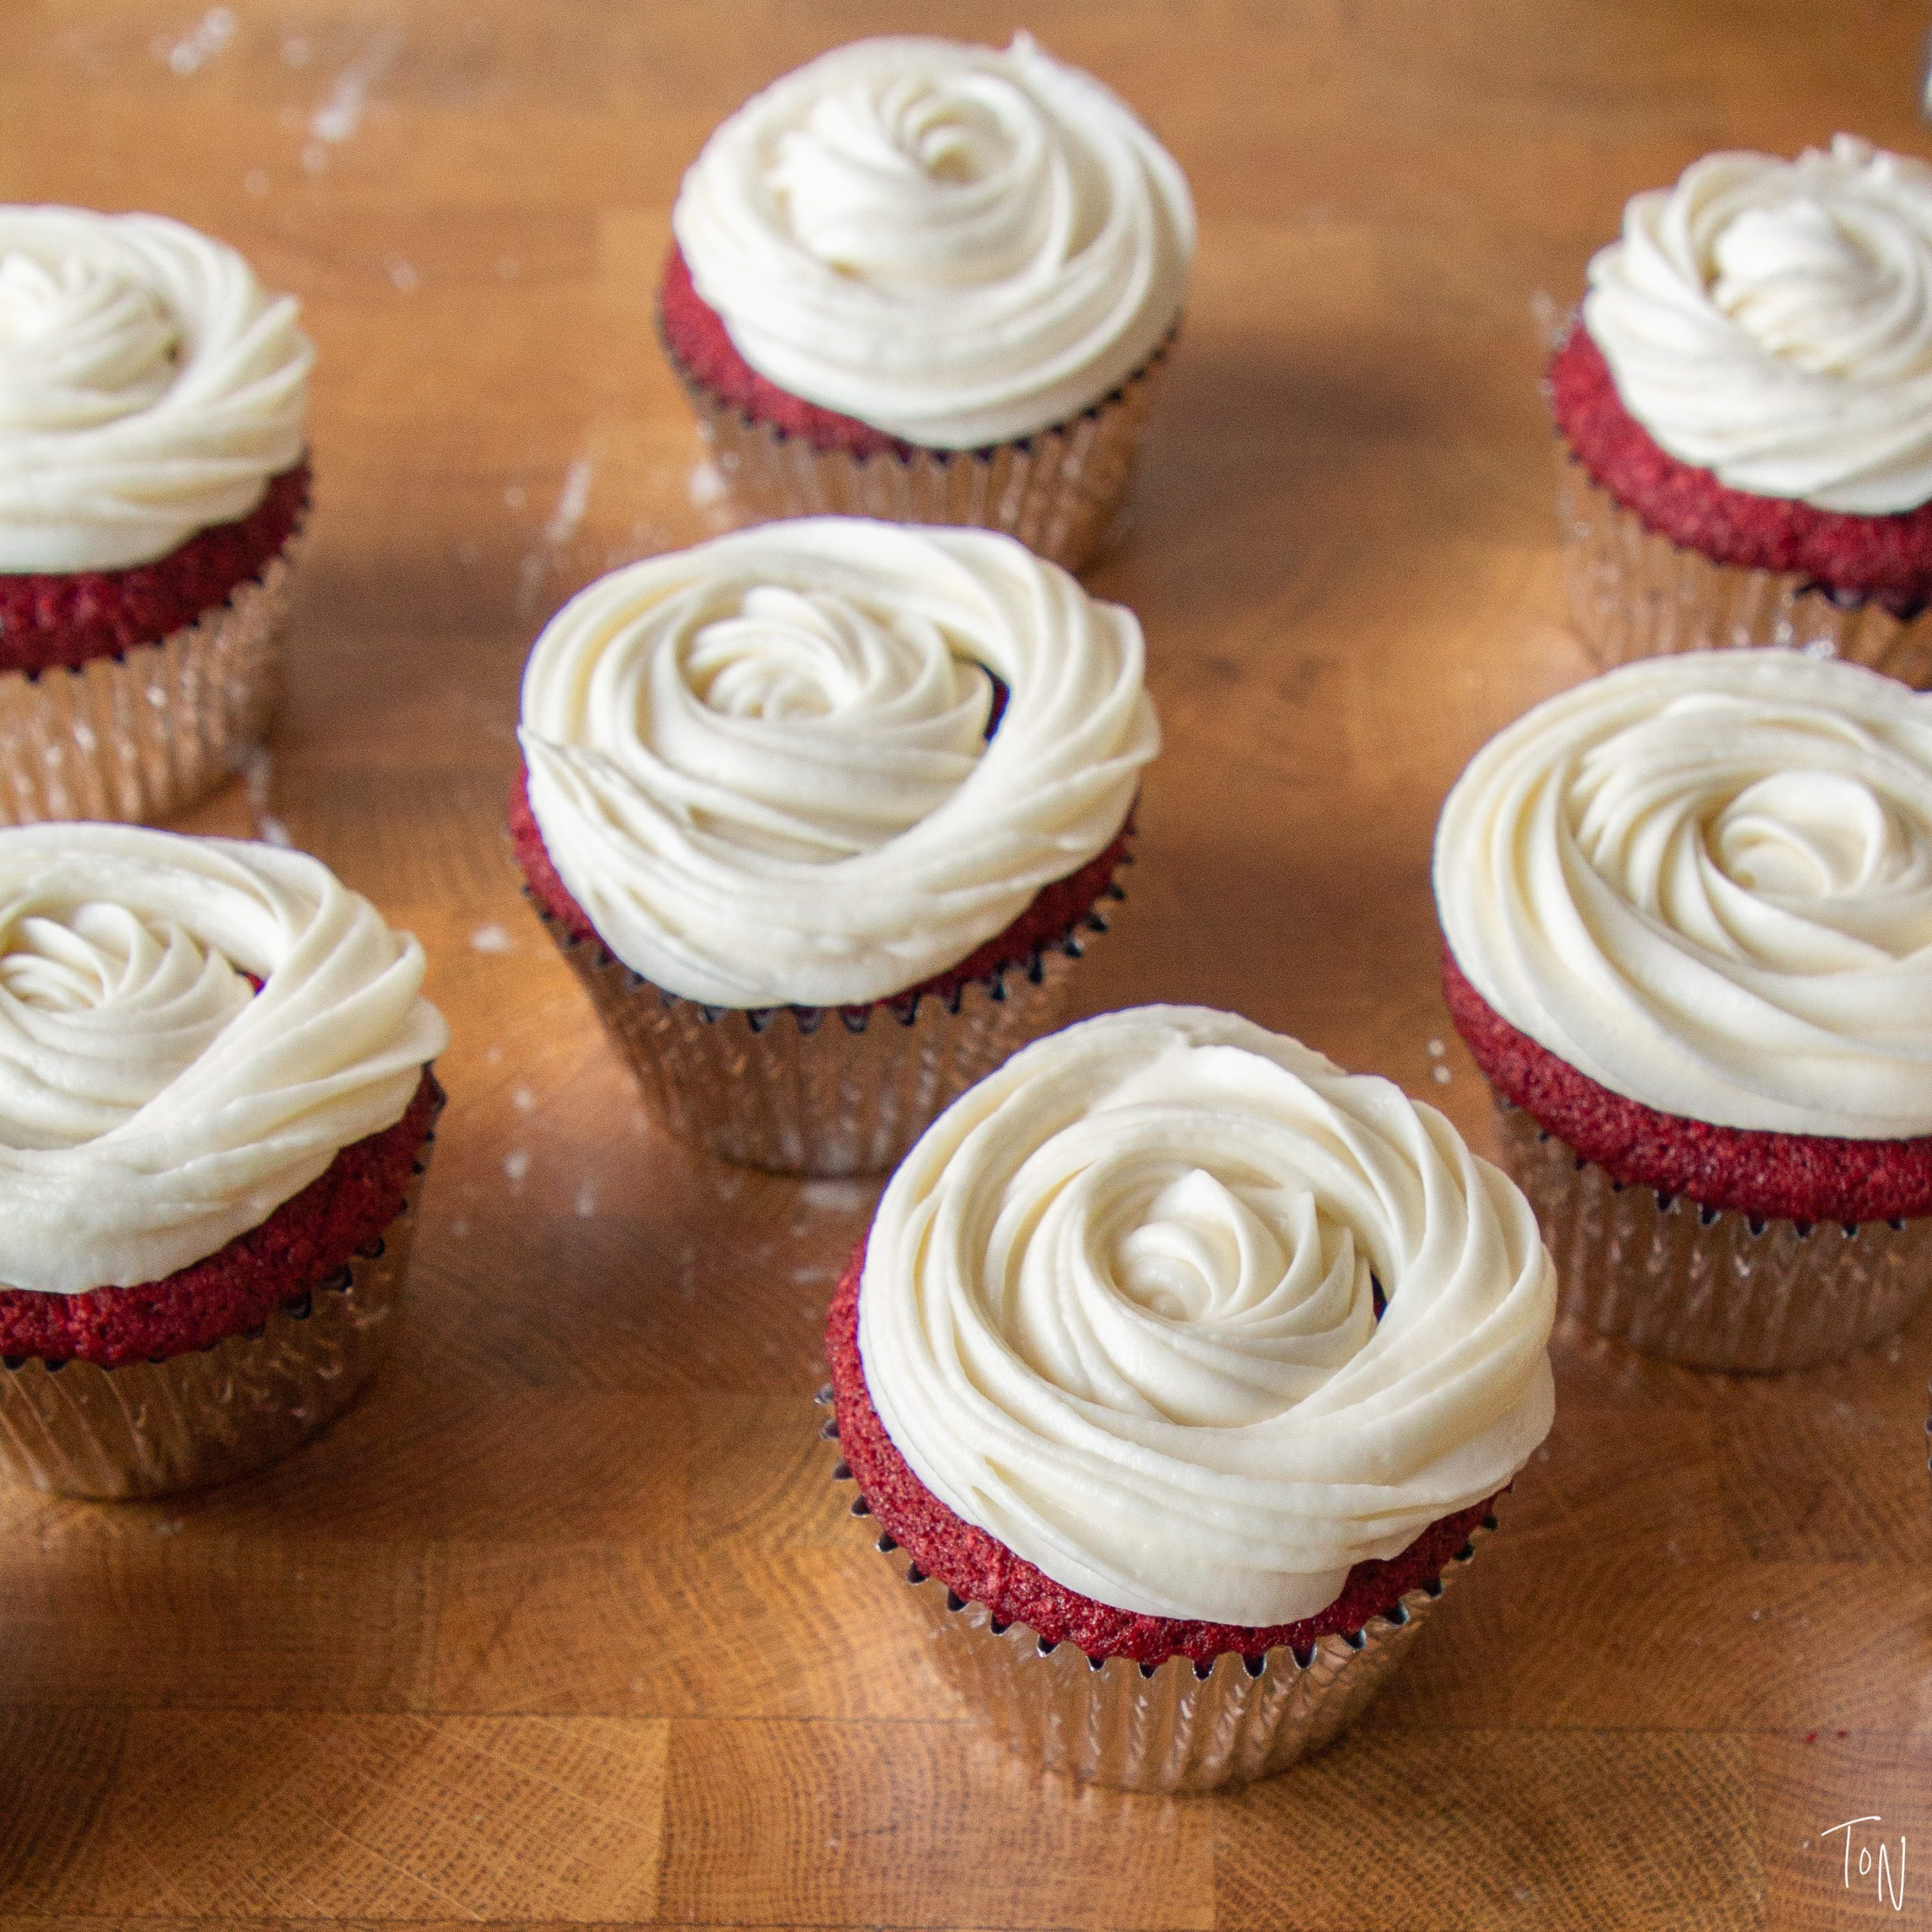 Our version of the classic - red velvet cupcakes never disappoint!